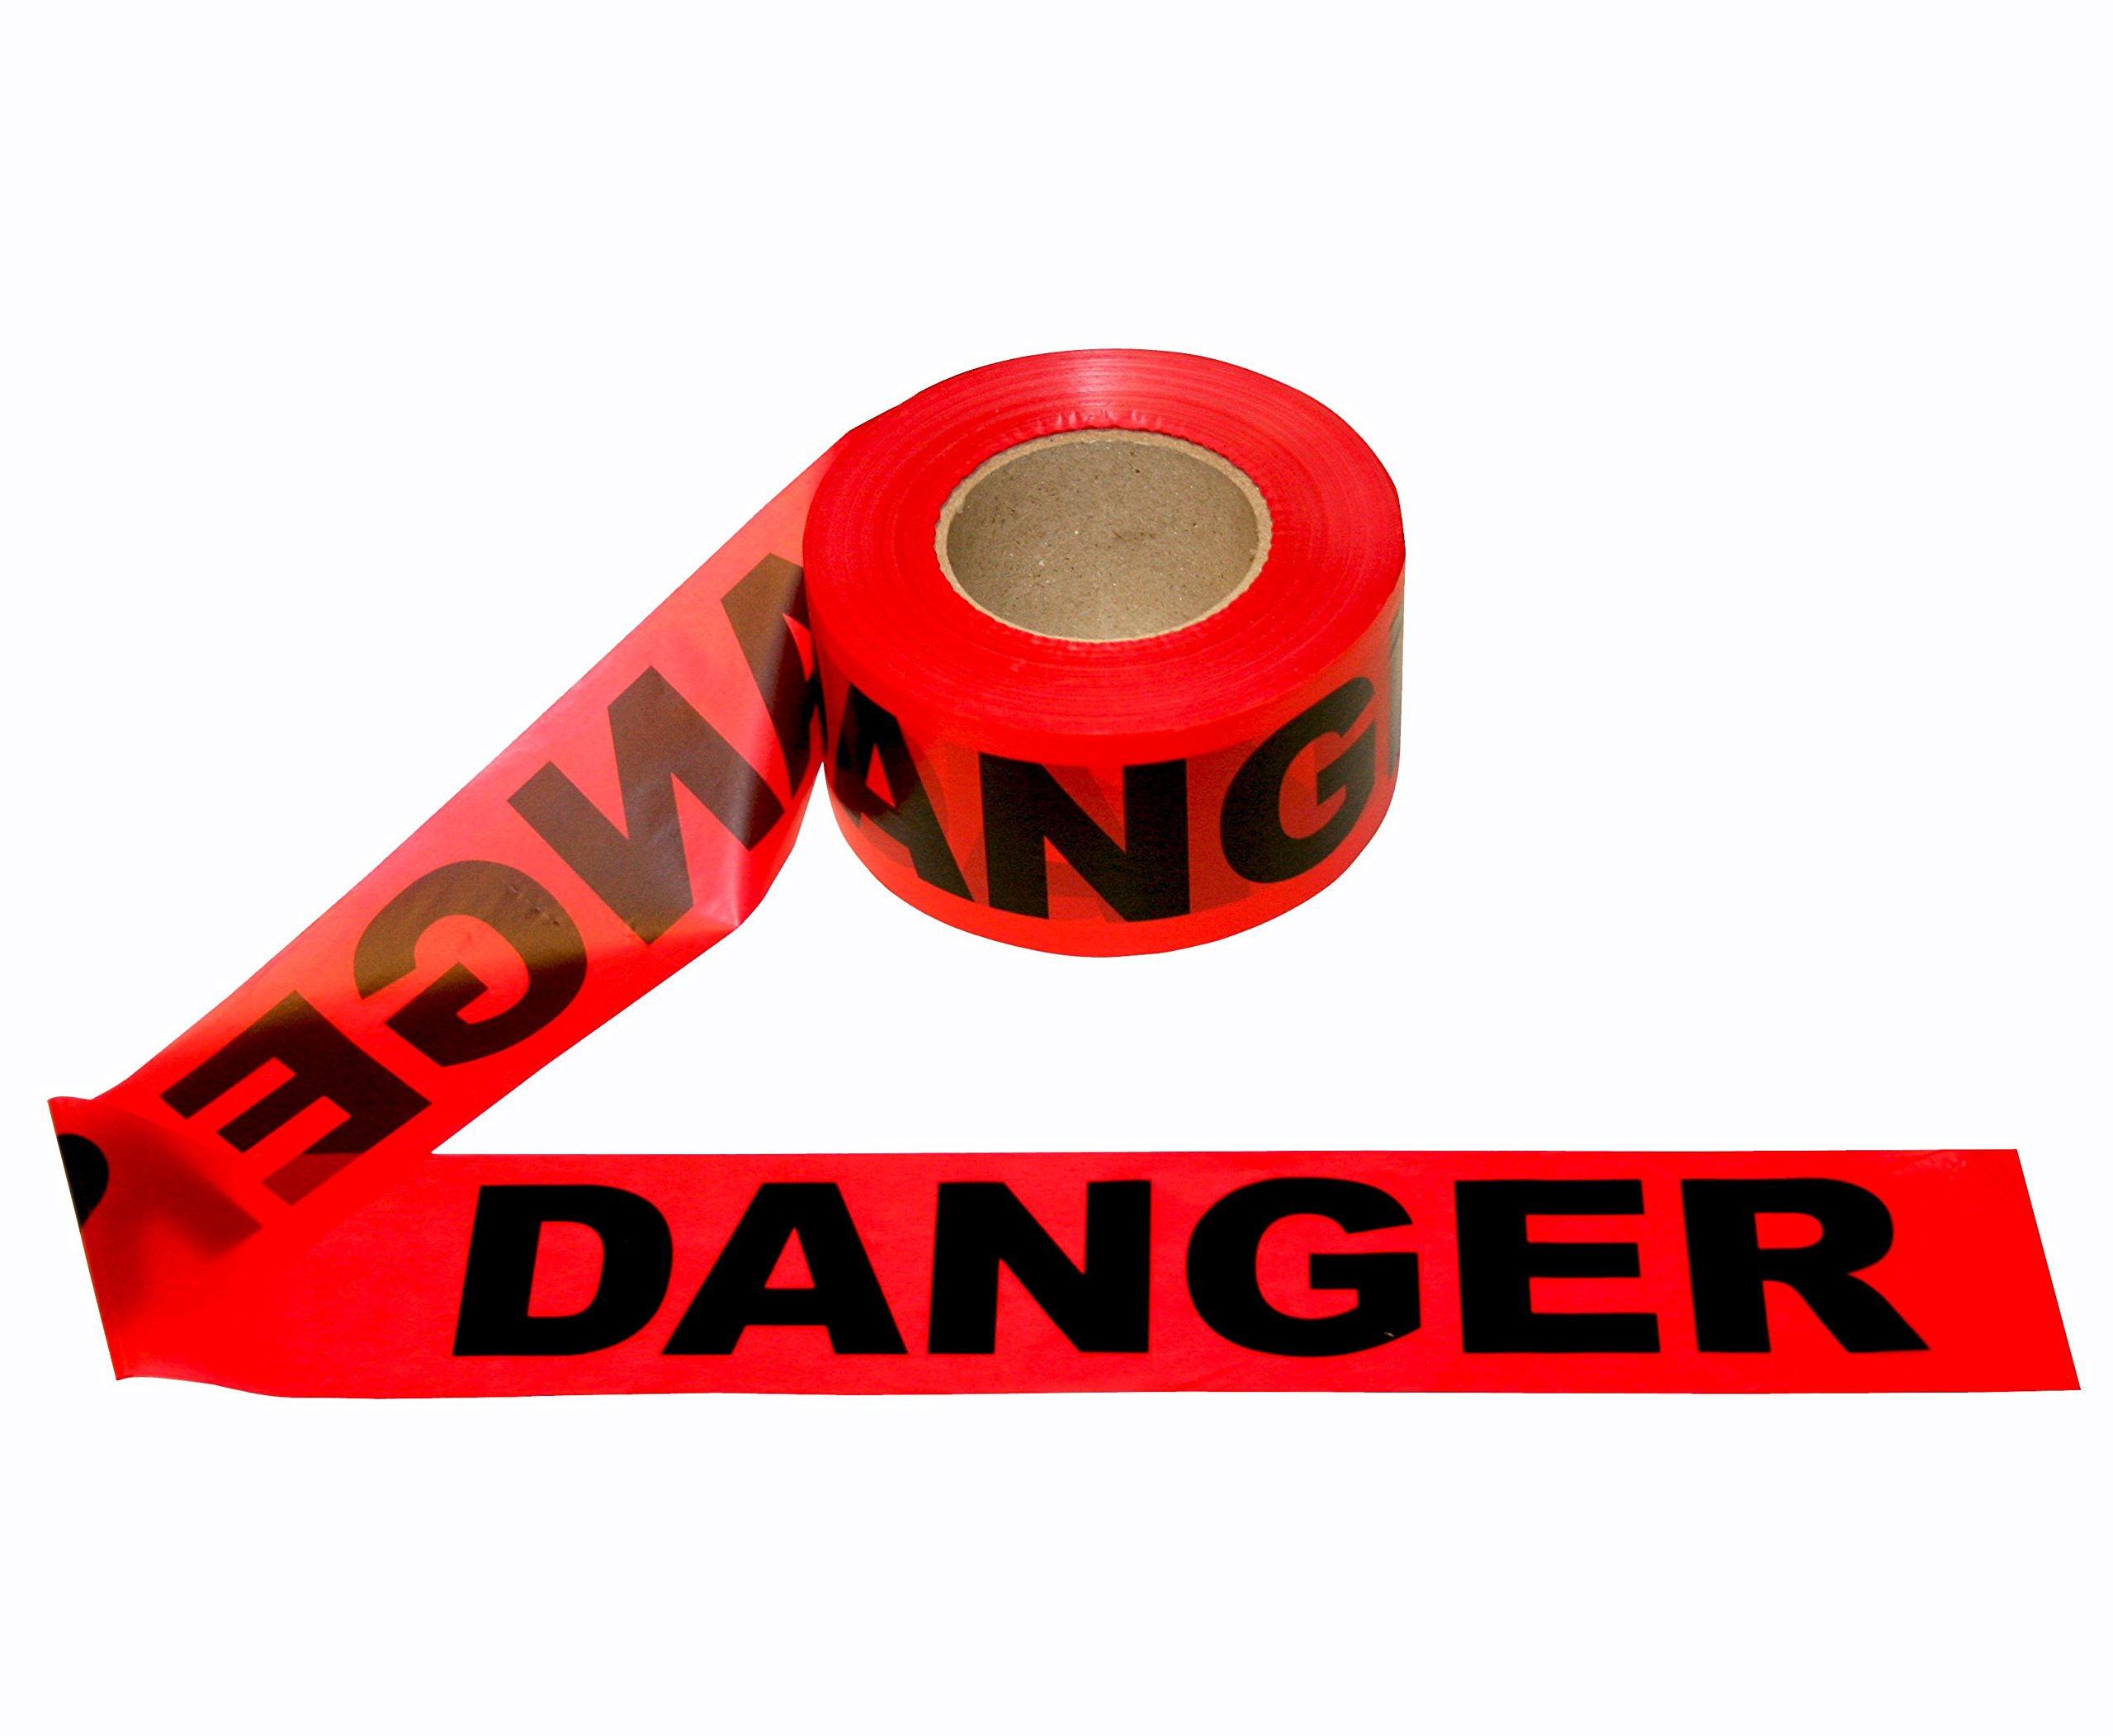 C&W Red Danger Barricade Ribbon Tape - 3'' X 1000 ft • Bright Red with a Bold Black Print for High Visibility • 3'' wide for Maximum Readability • Tear Resist Design • Danger Tape. by C&W (Image #2)